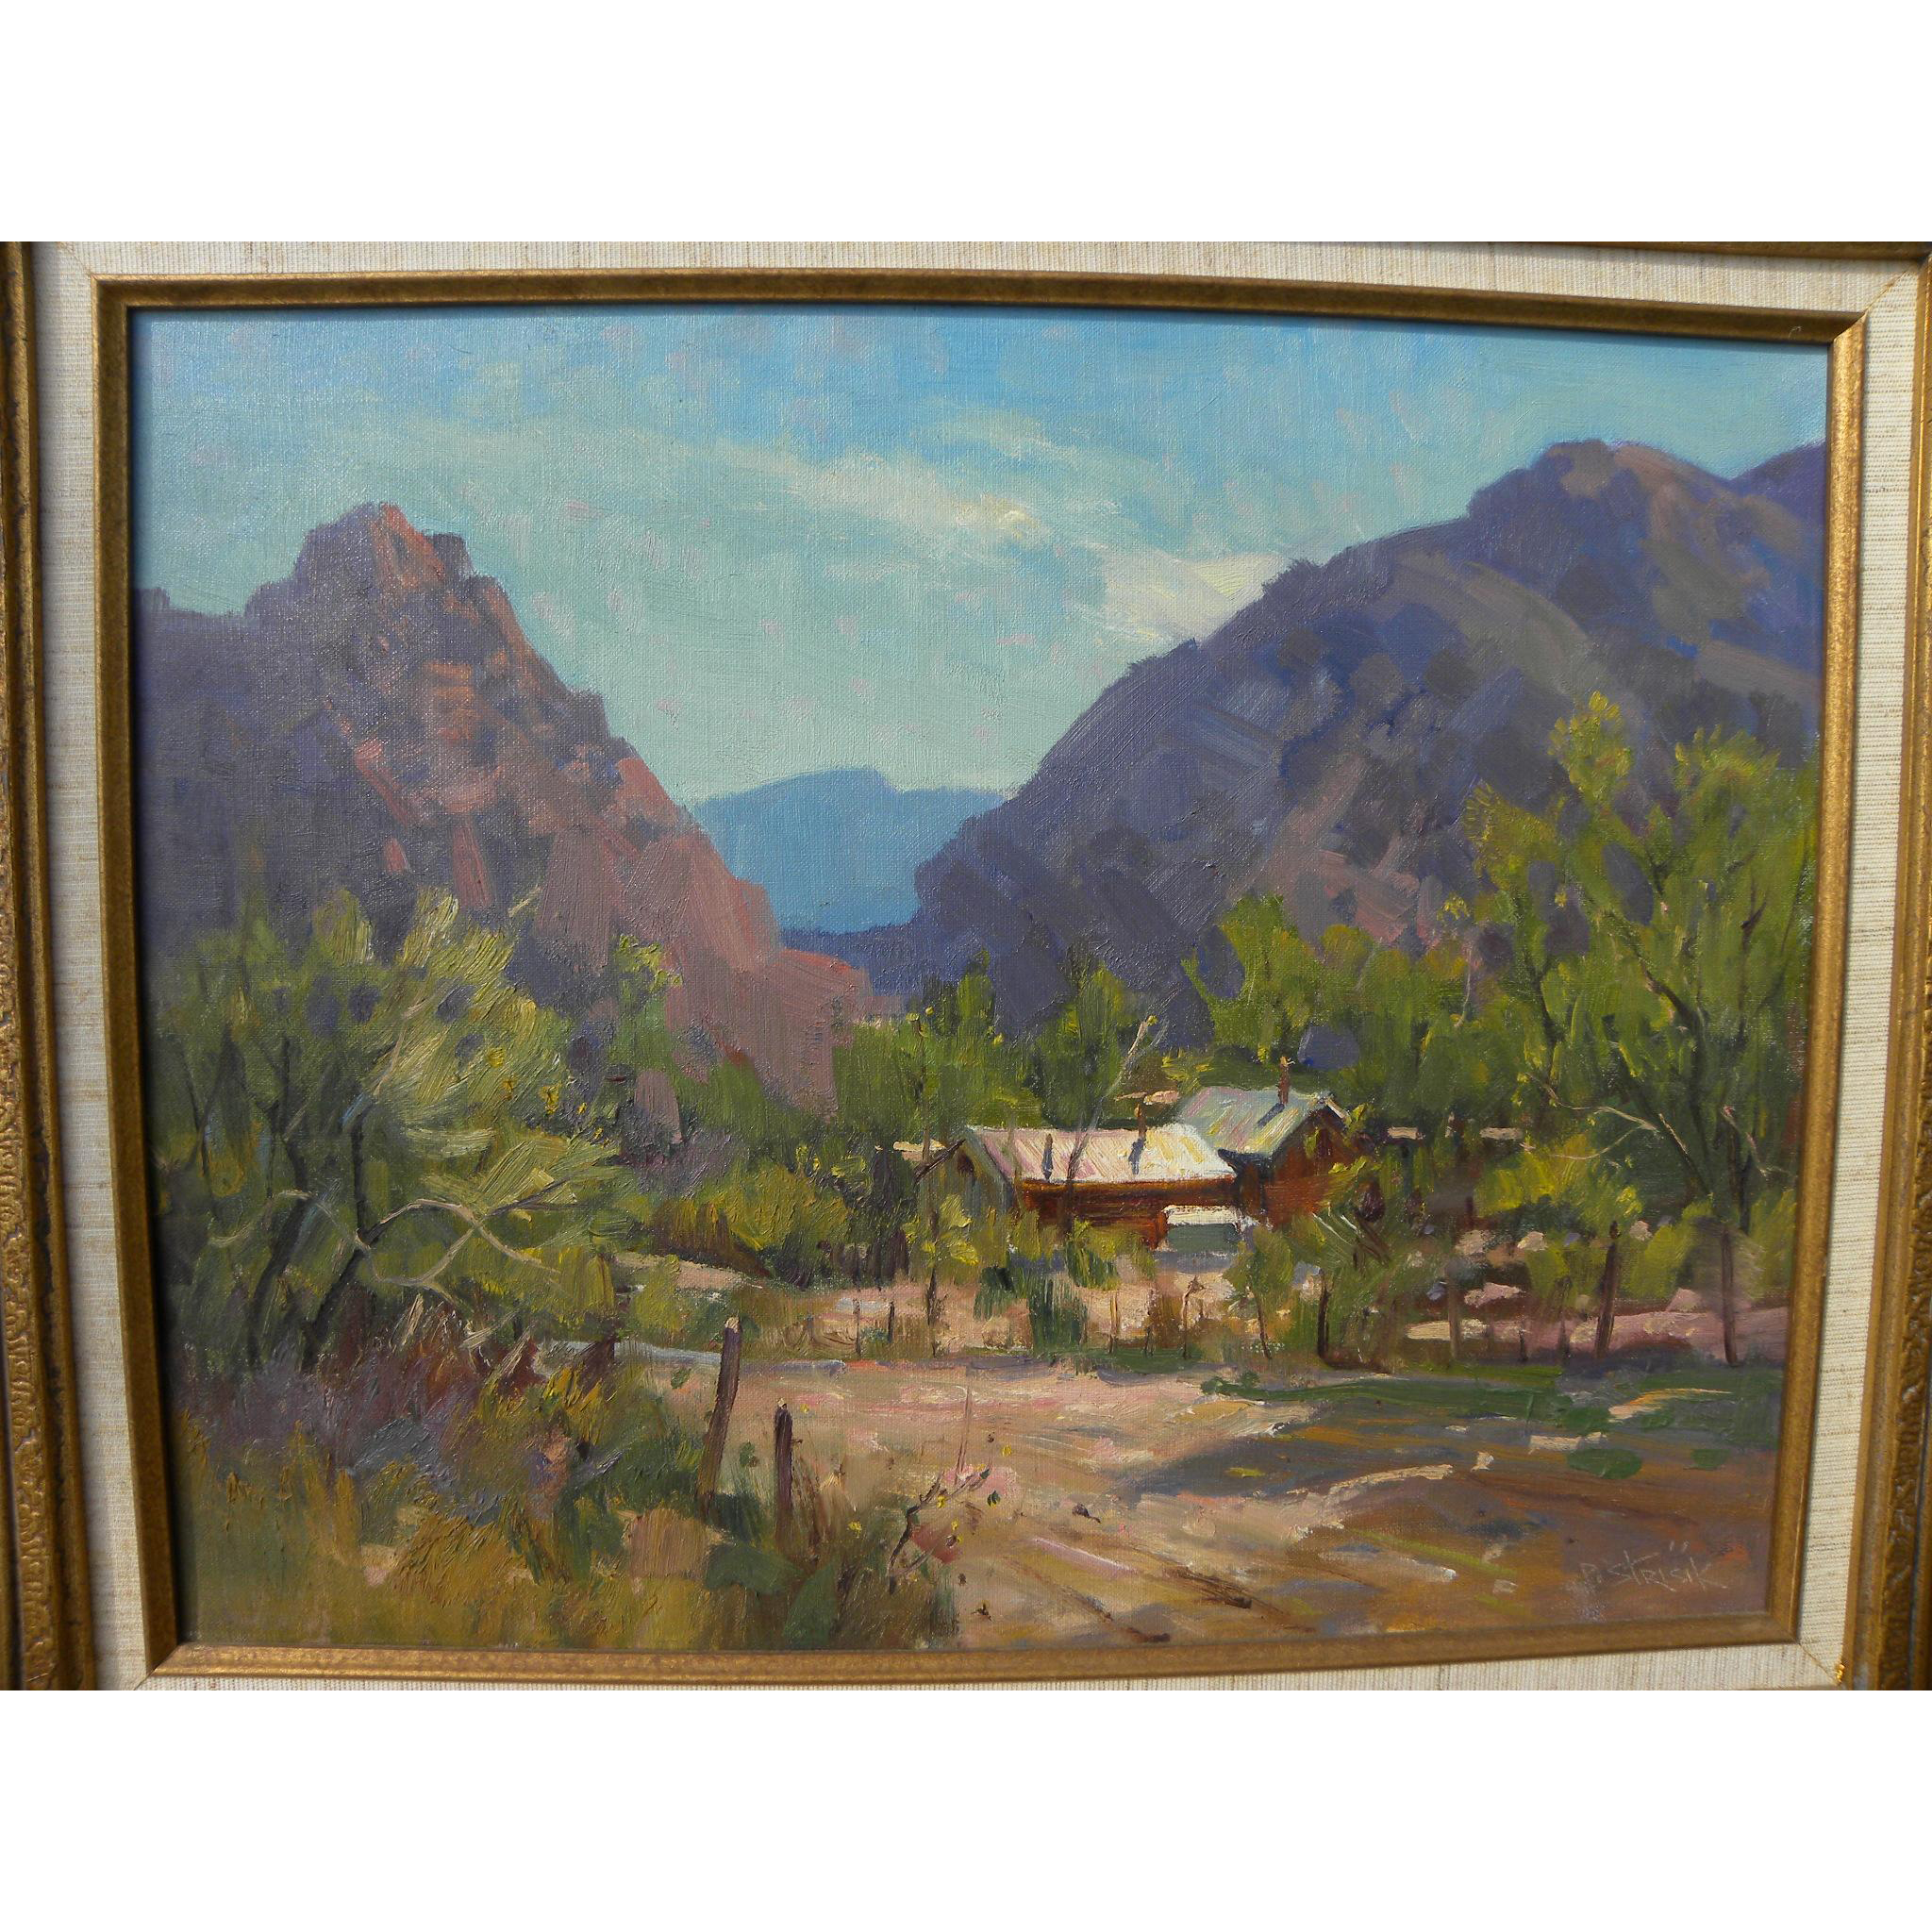 PAUL STRISIK (1918-1998) Southwestern landscape painting by the American plein air artist